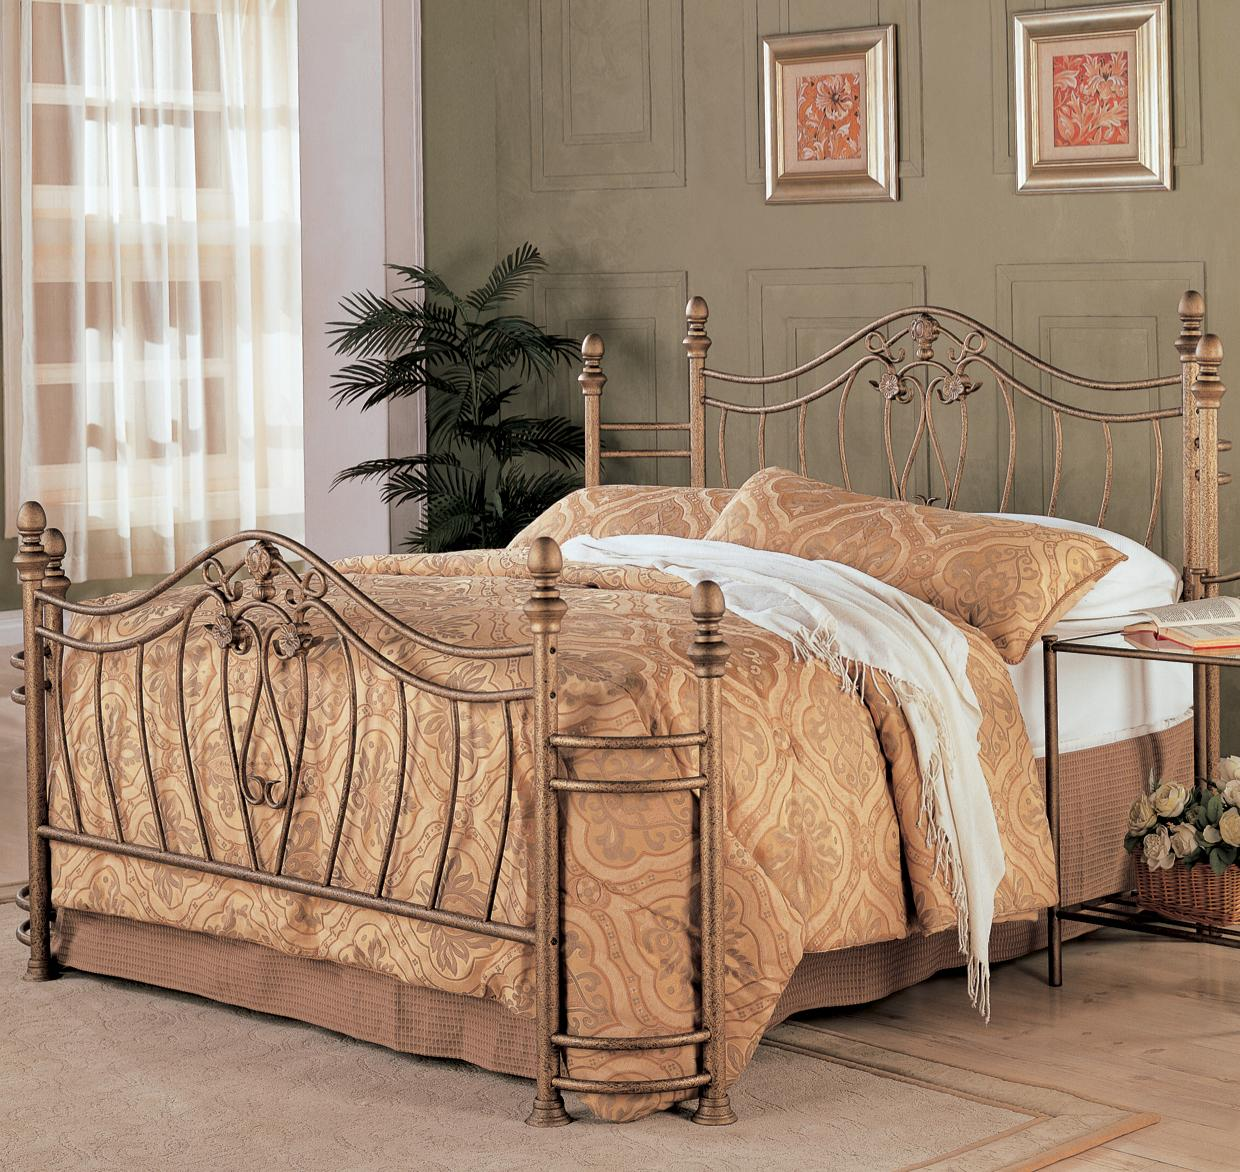 Coaster Sydney Queen Iron Bed   Item Number: 300171Q+1208